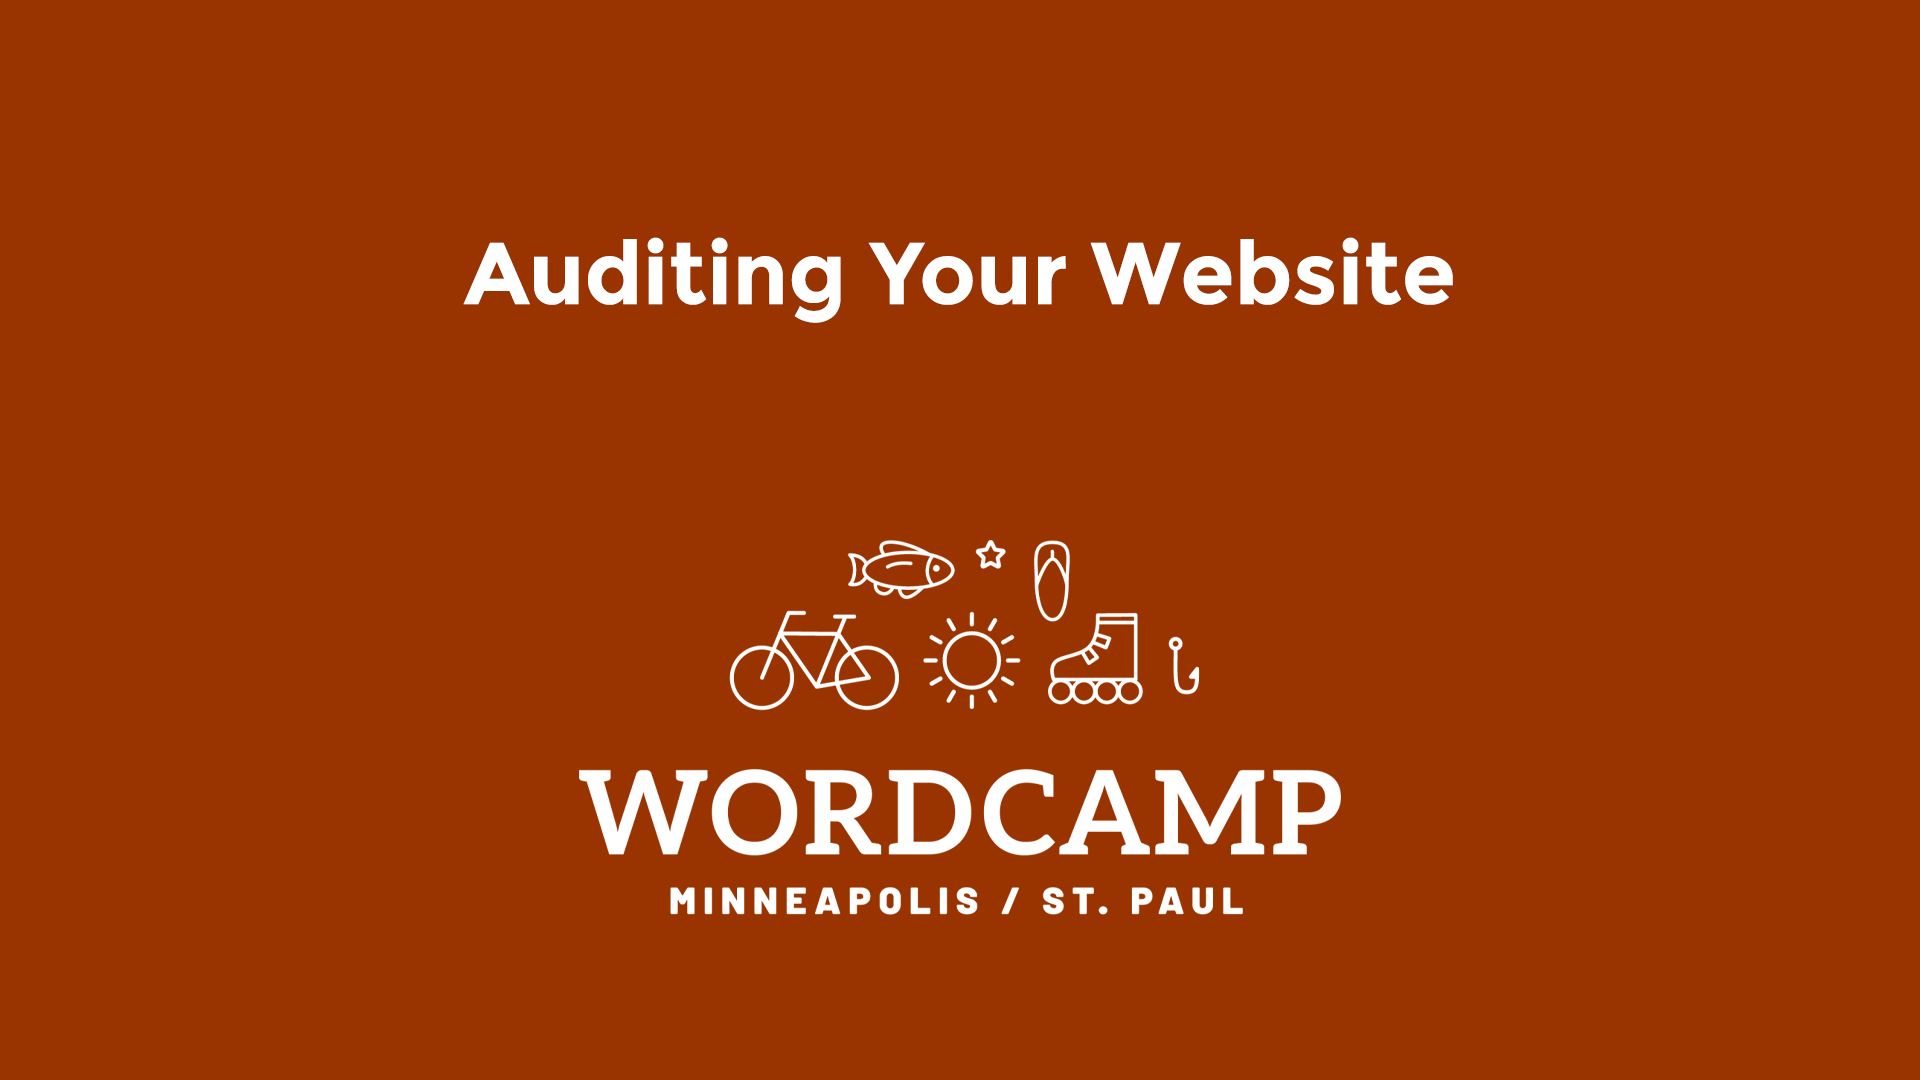 Auditing Your Website Featured Image